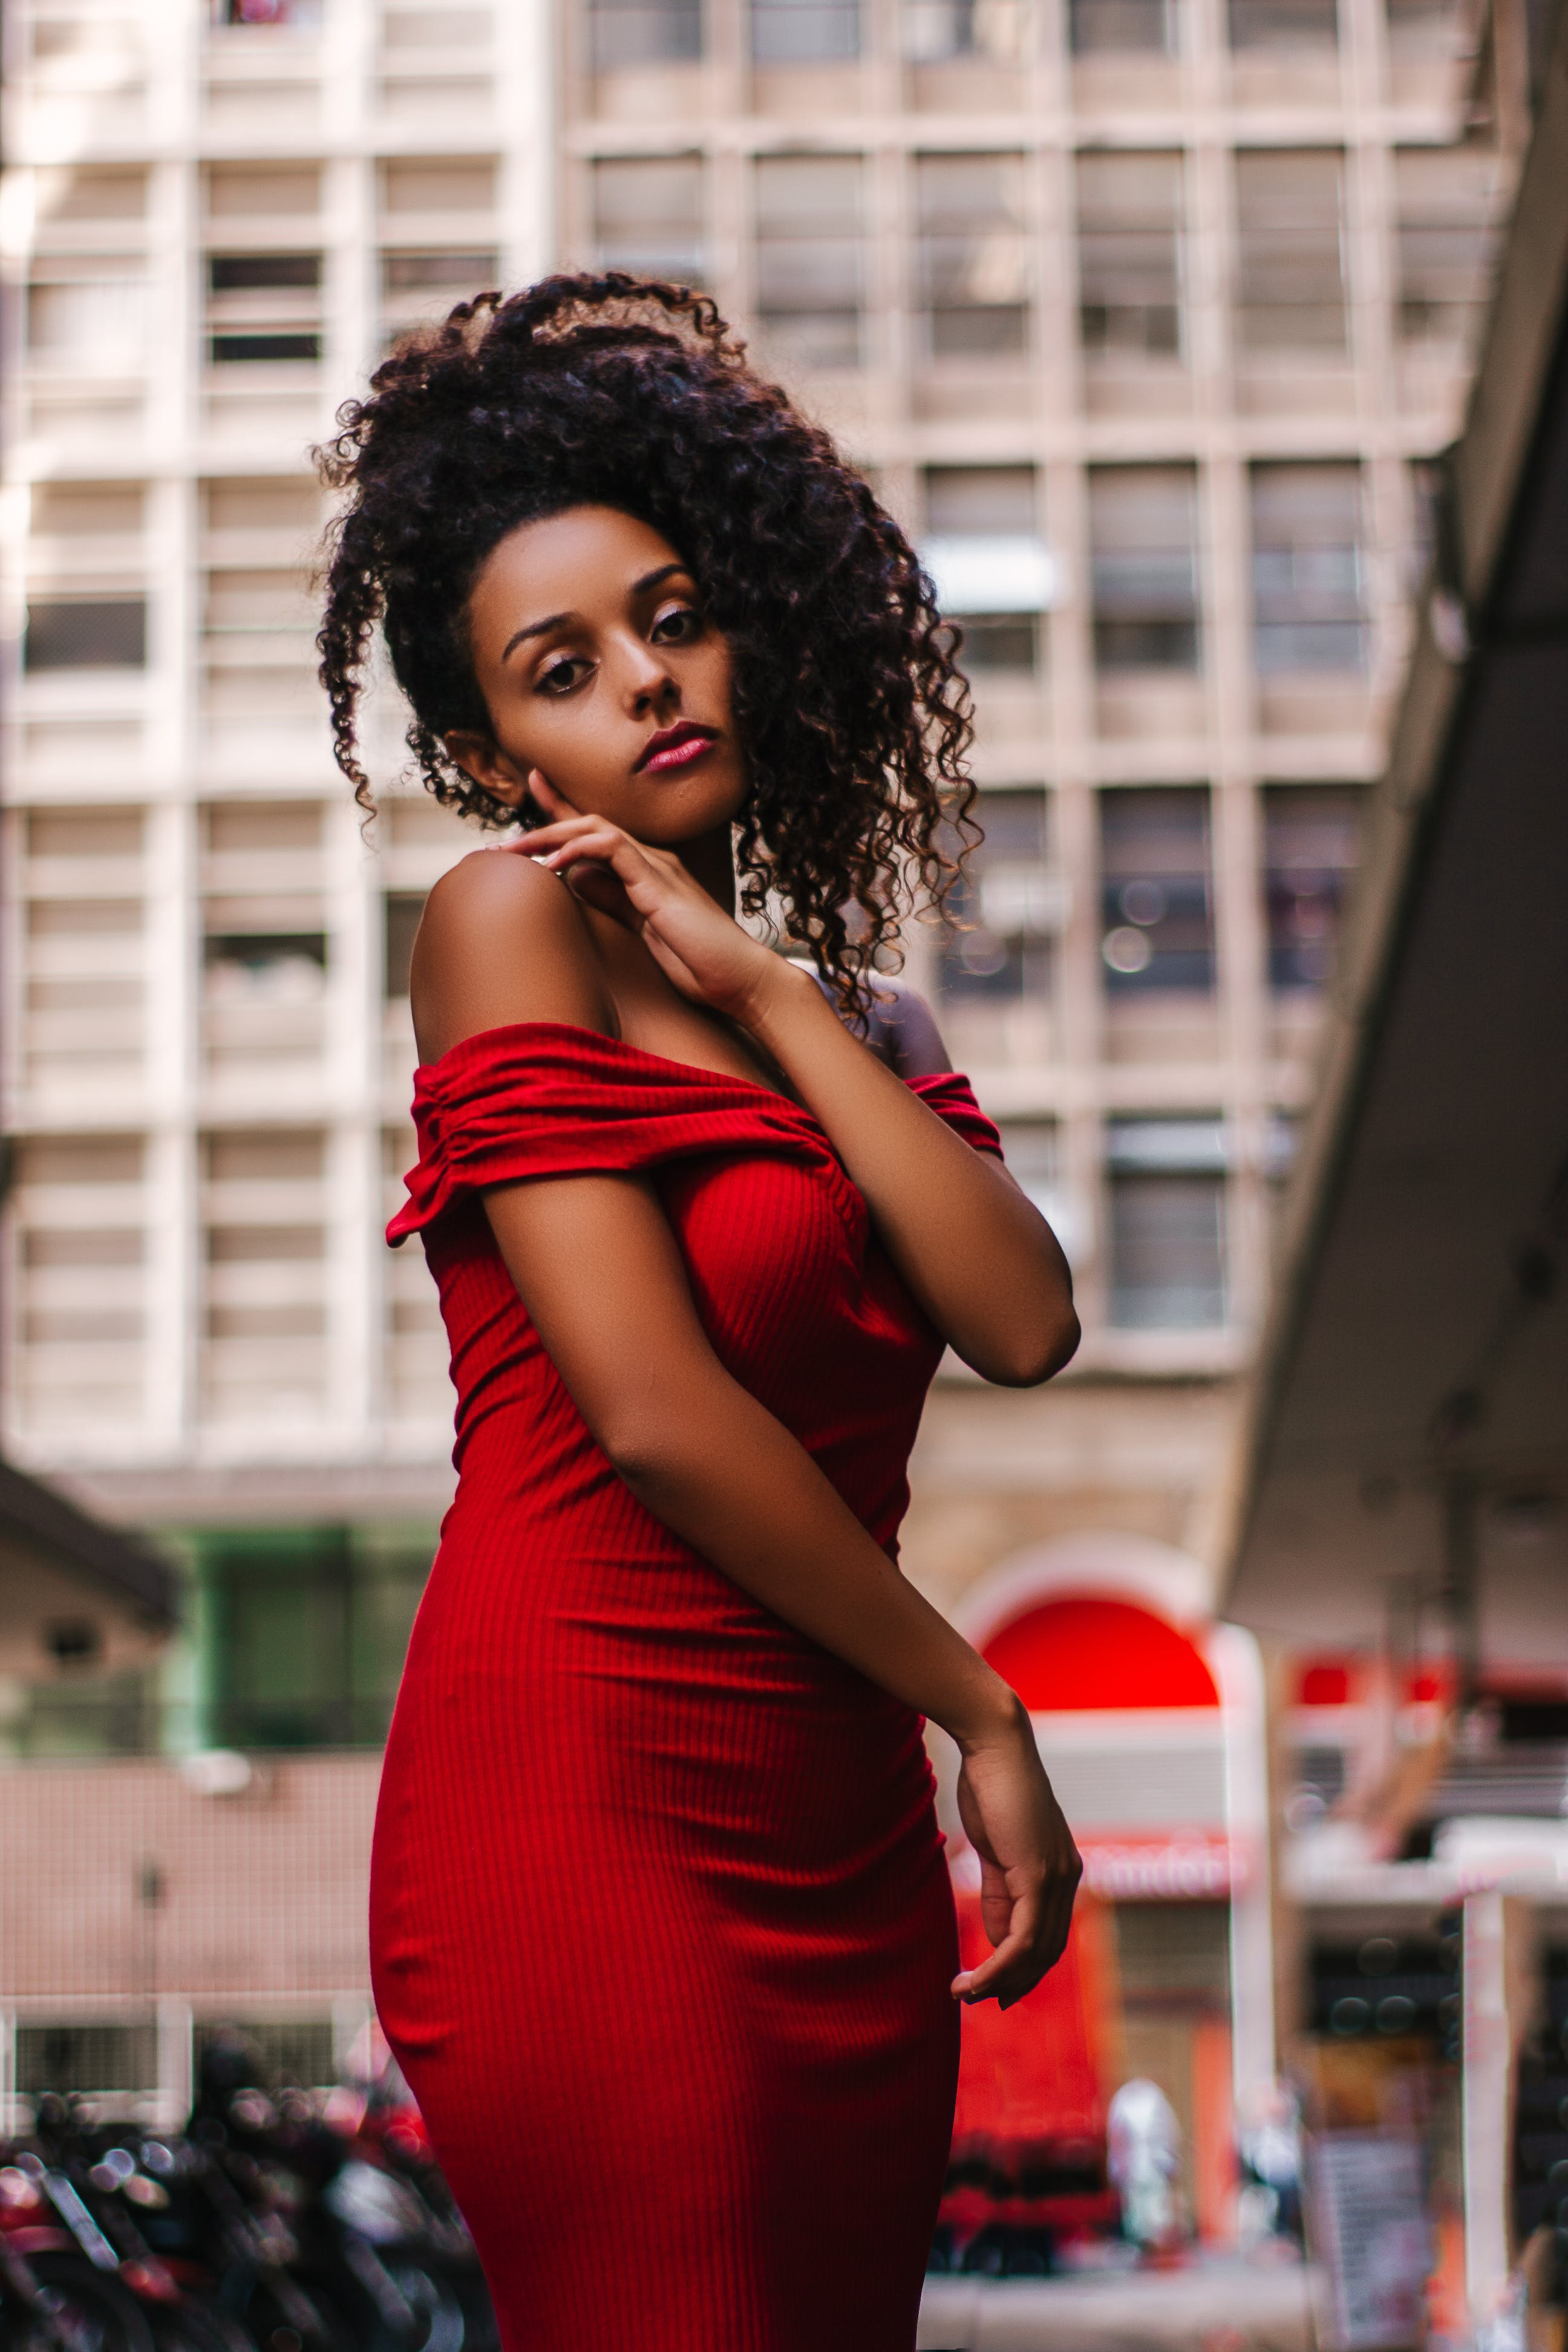 Woman in Red Off-shoulder Dress Near Building